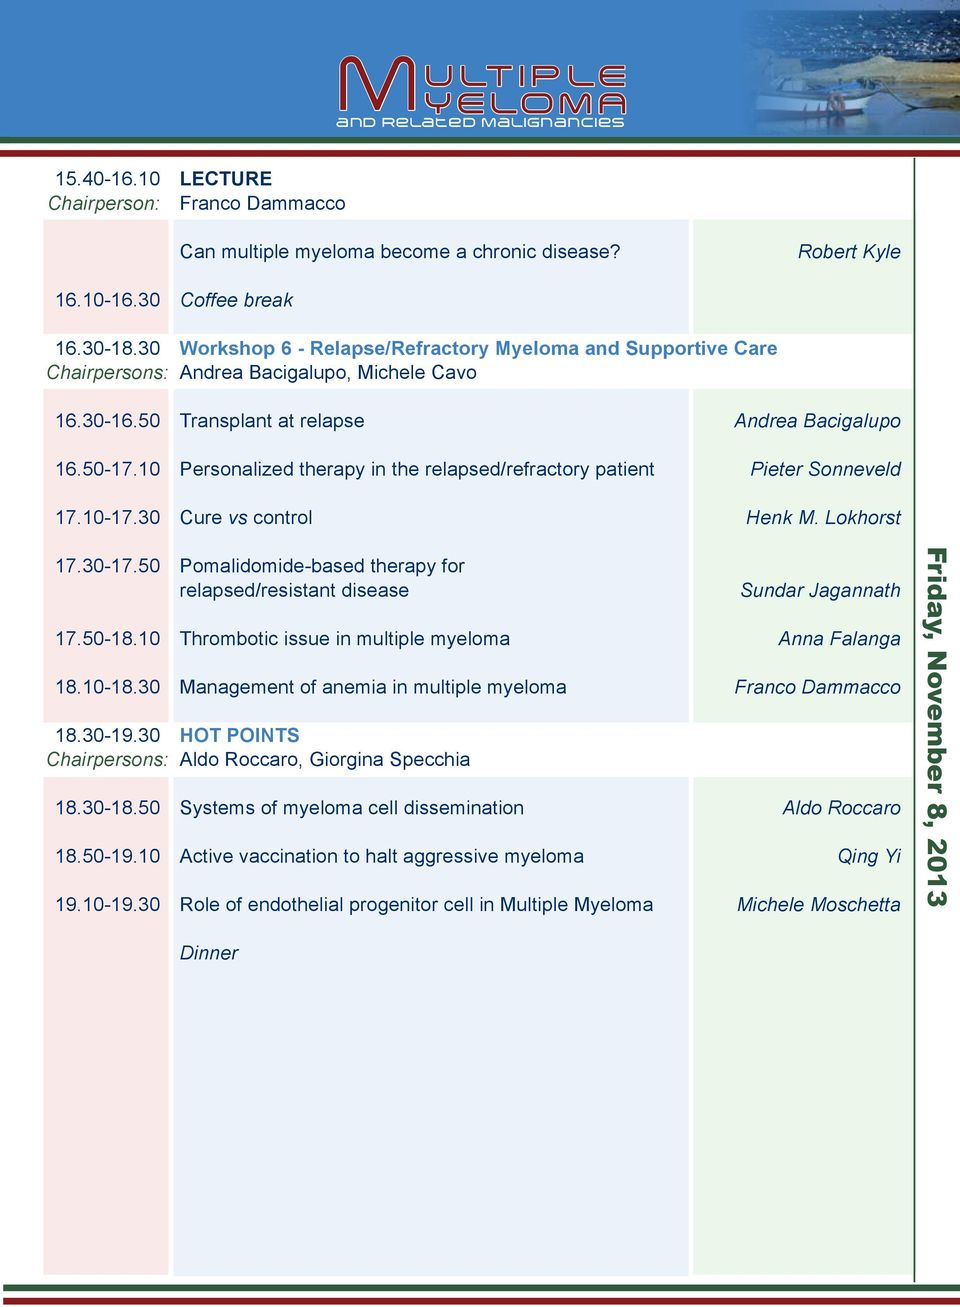 10 Personalized therapy in the relapsed/refractory patient Pieter Sonneveld 17.10-17.30 Cure vs control Henk M. Lokhorst 17.30-17.